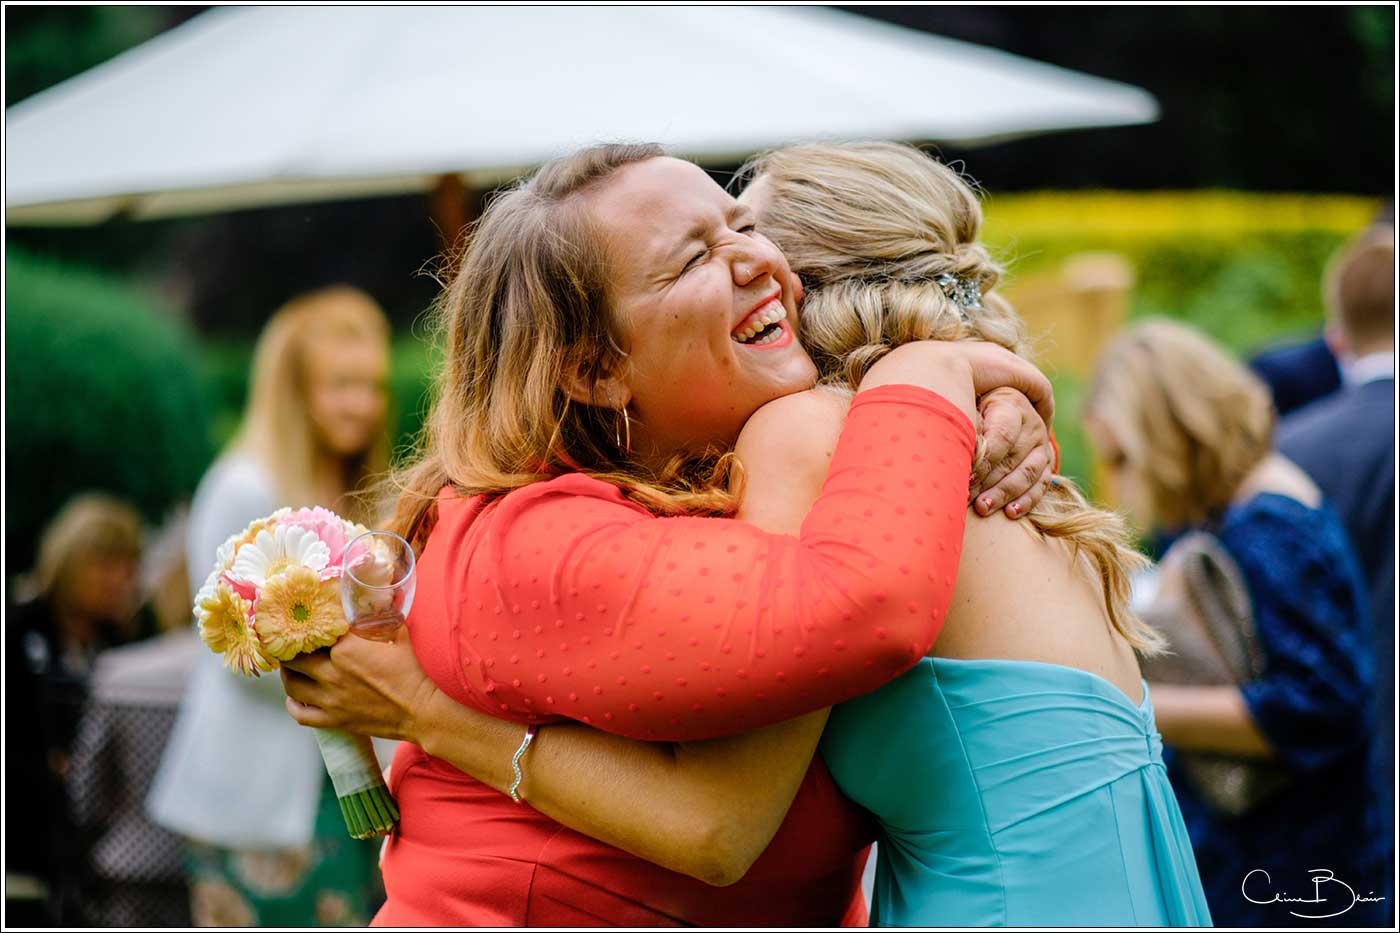 Coombe Abbey wedding photography showing 2 women guest hugging each other while laughing